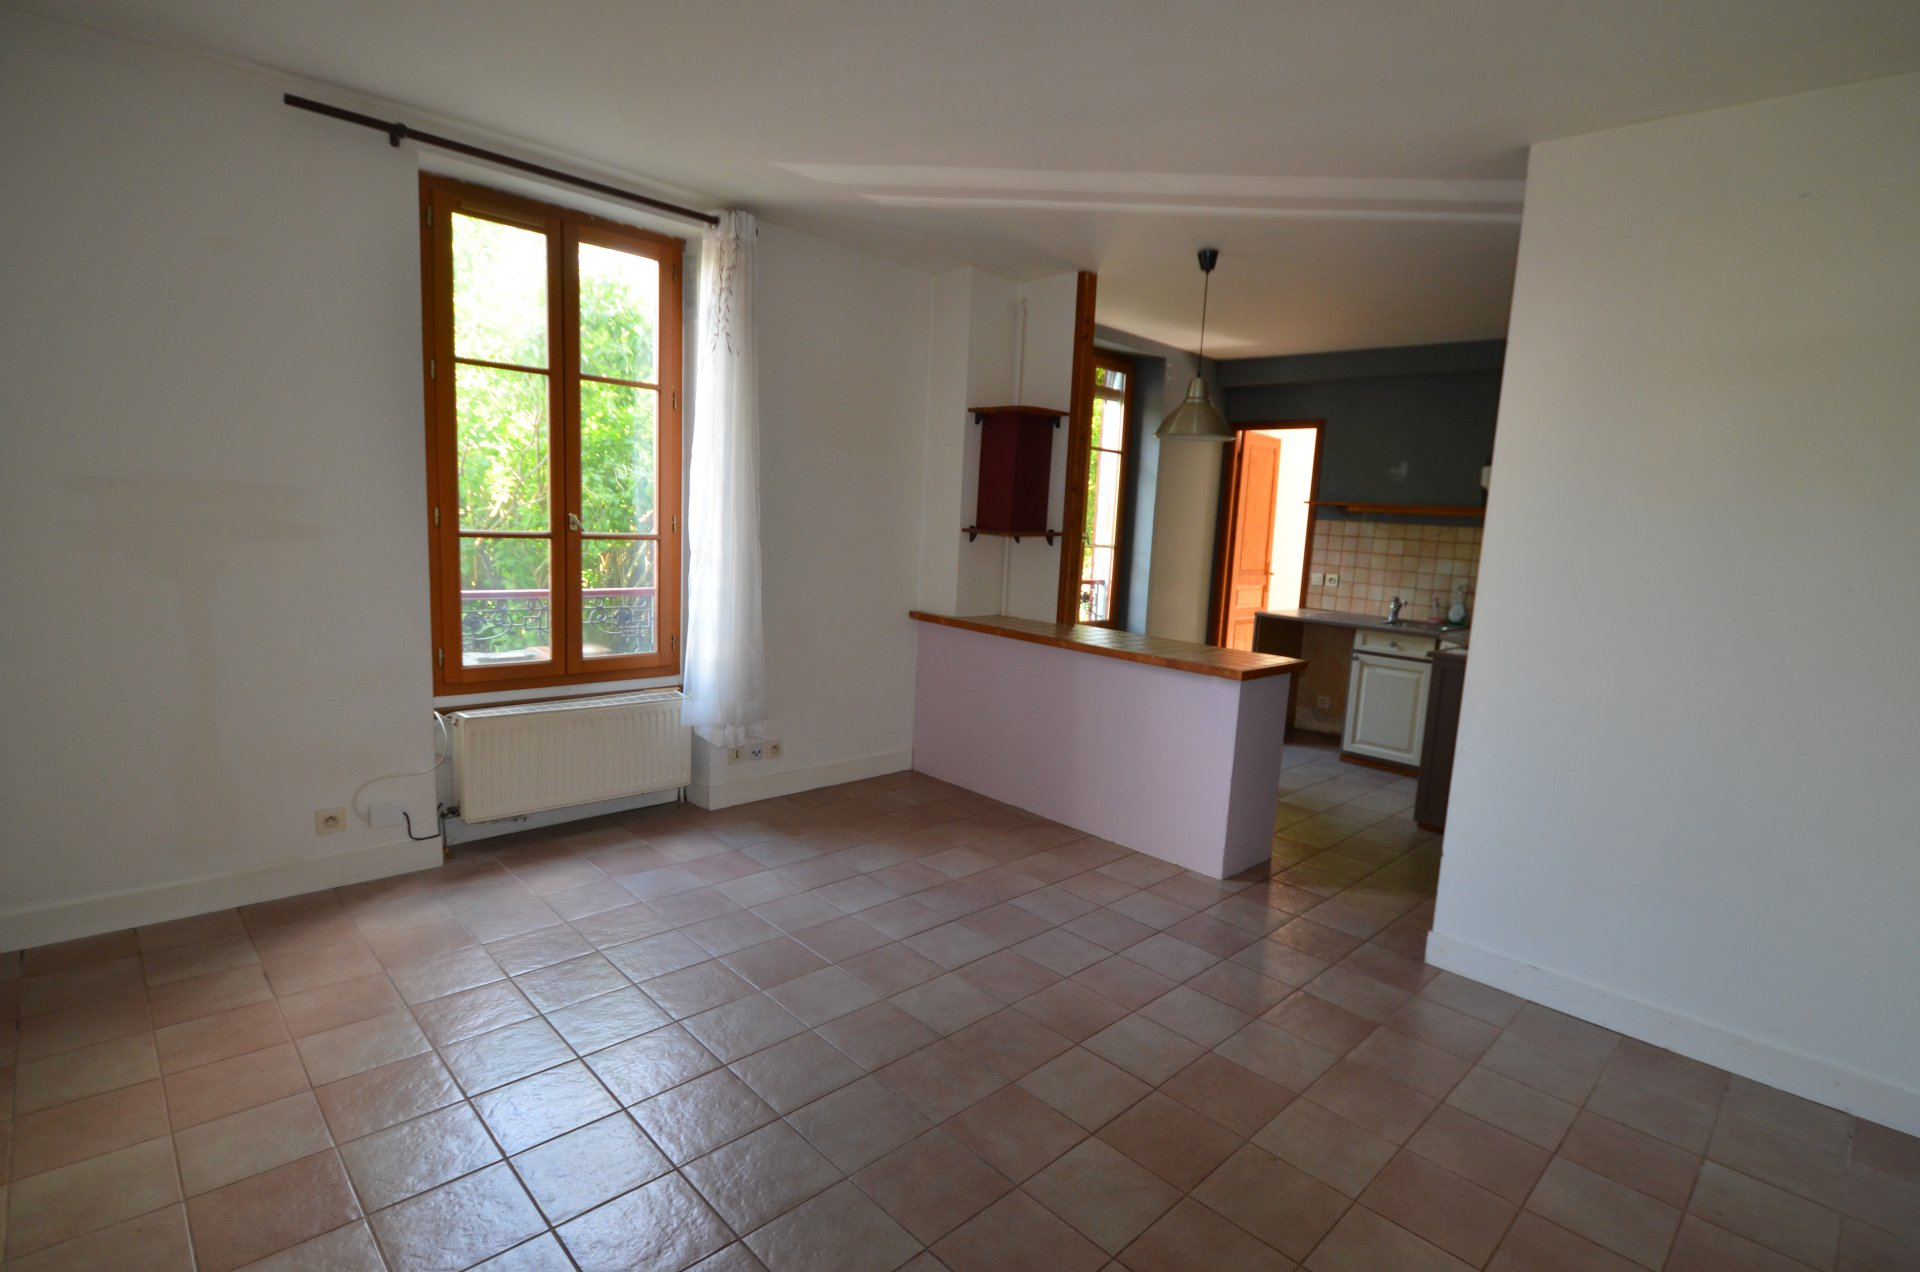 Appartement sous promesse